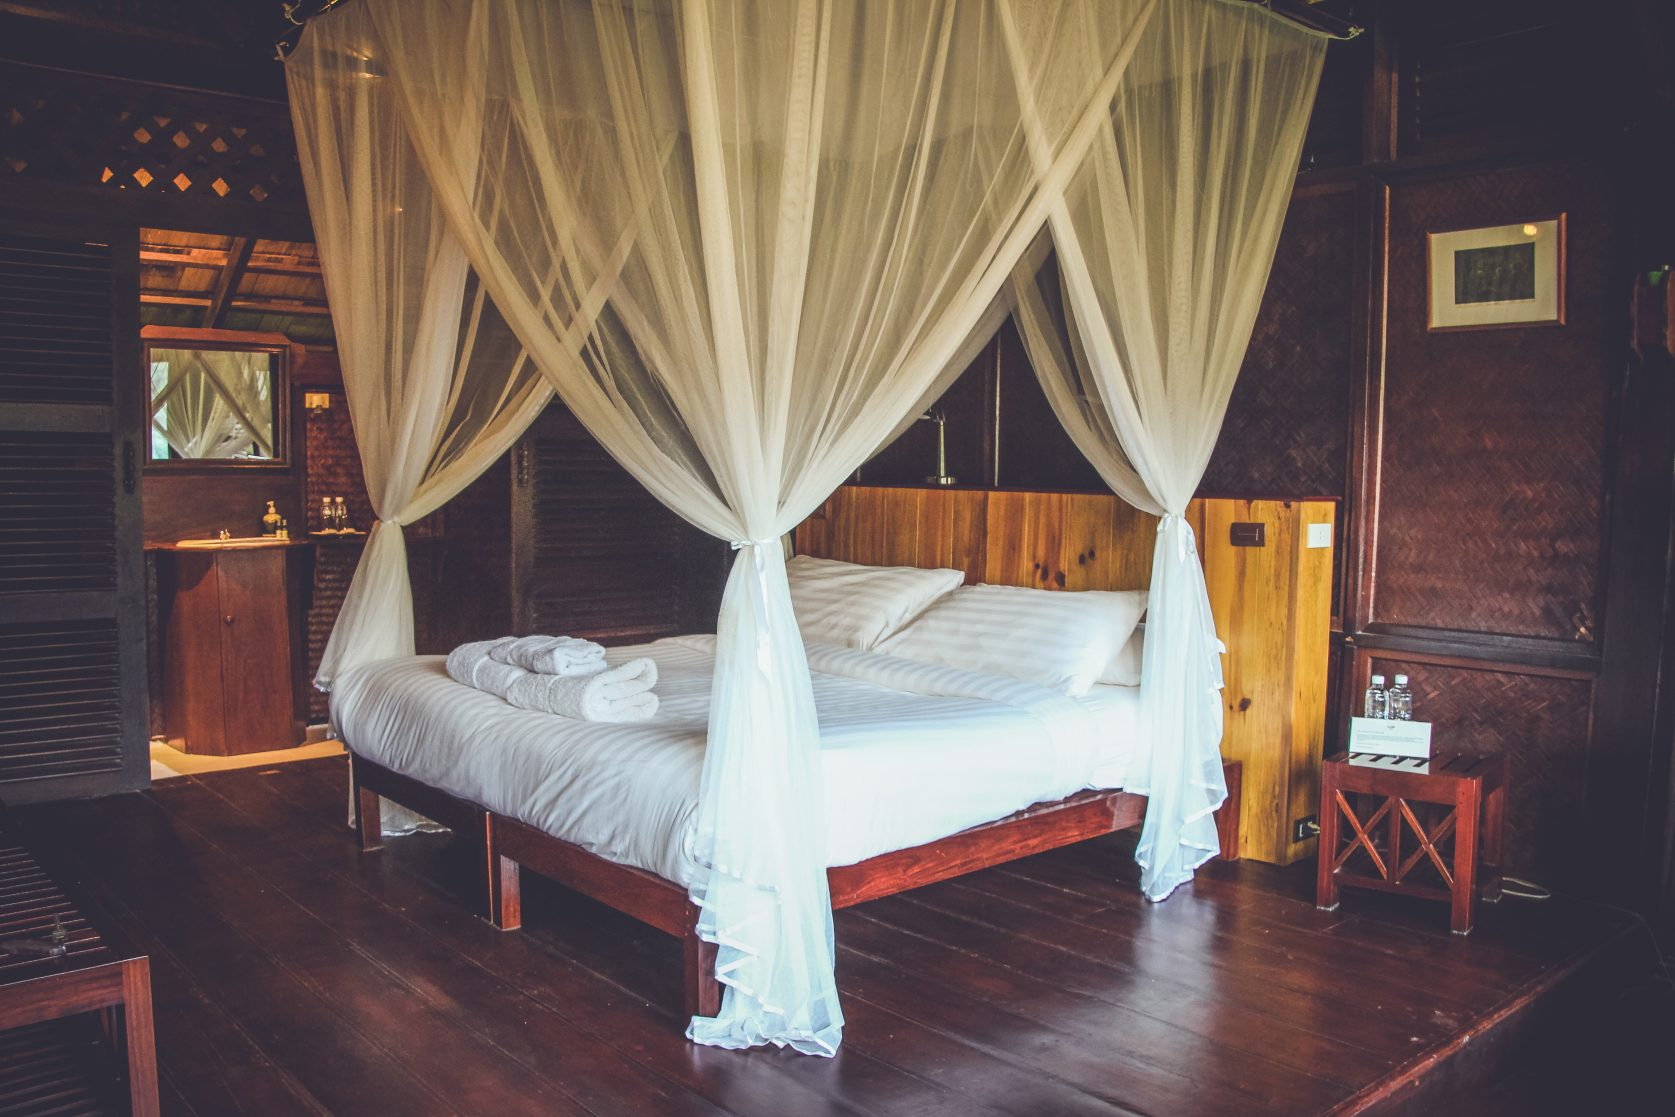 luang say lodge rooms